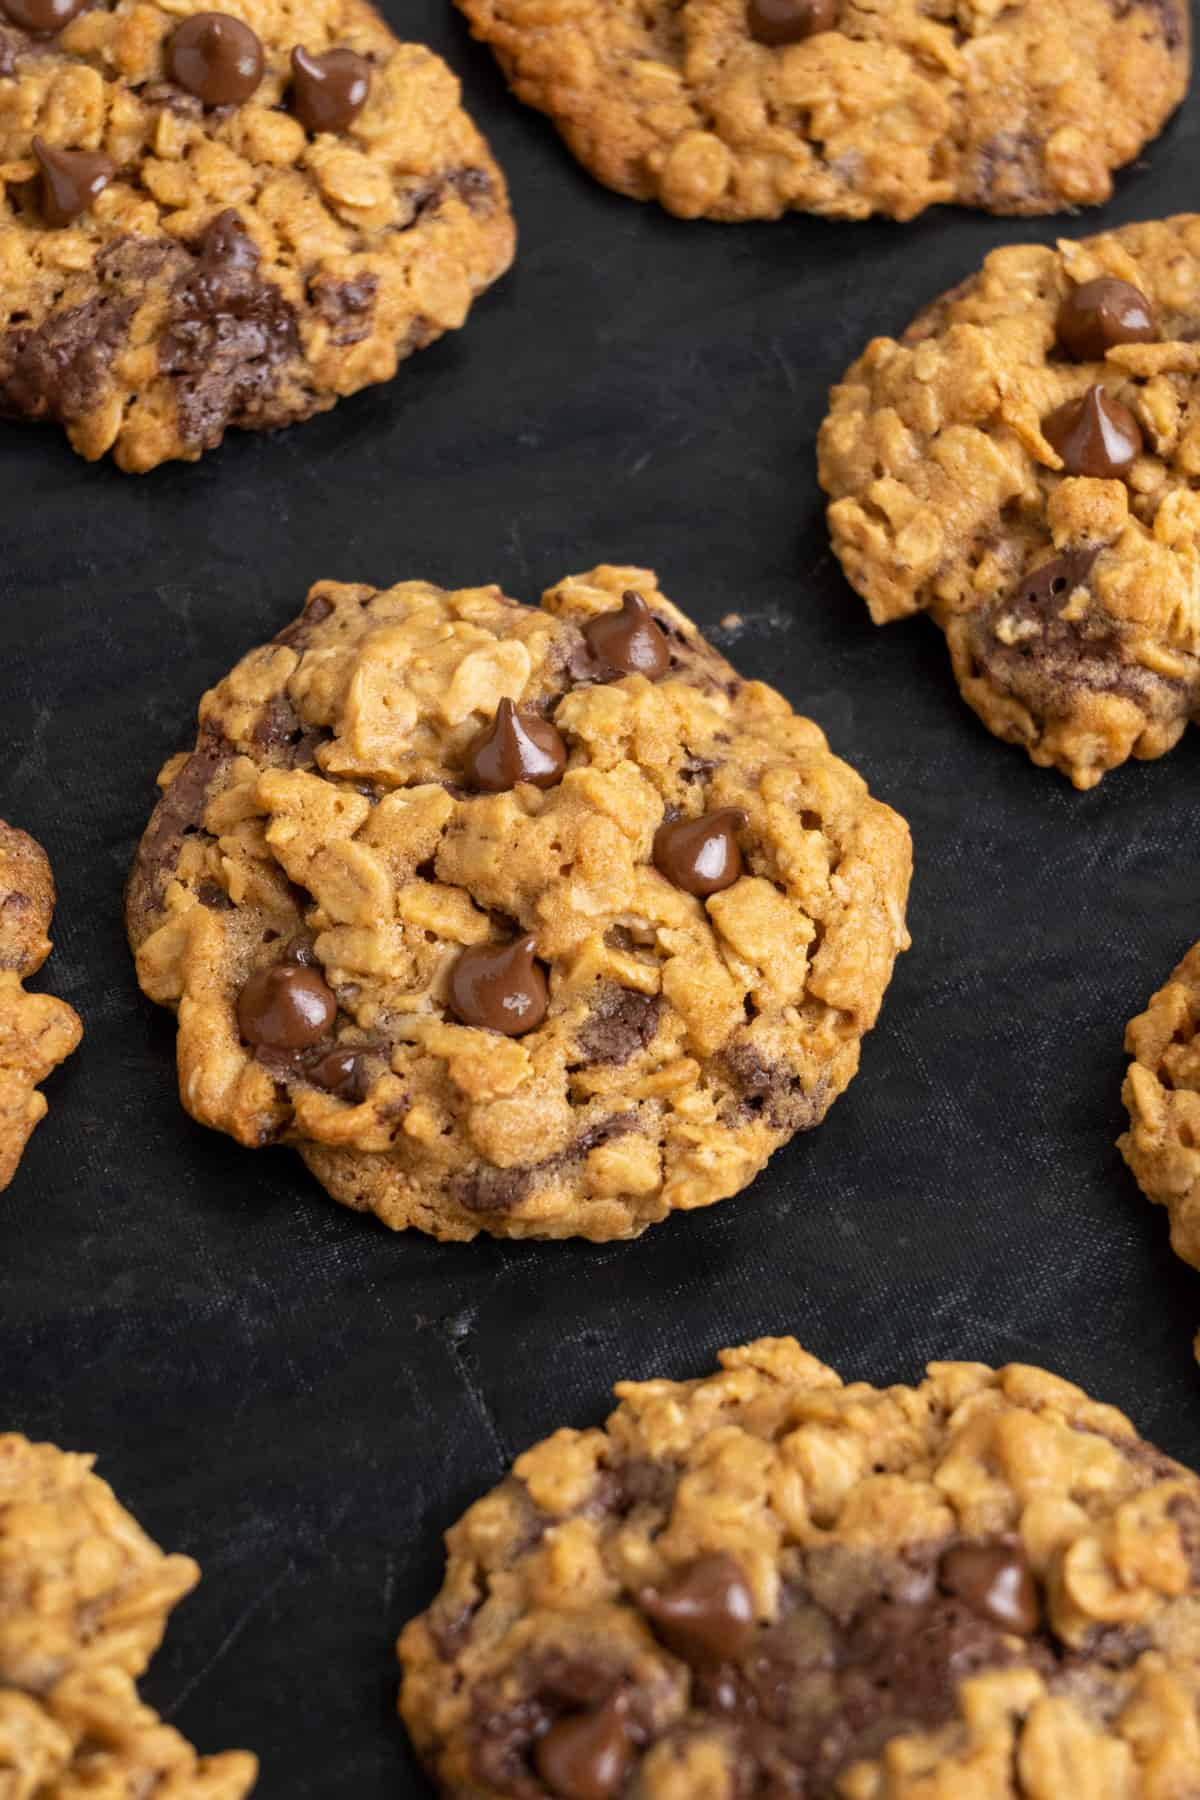 A close up of baked cookies on a baking tray.